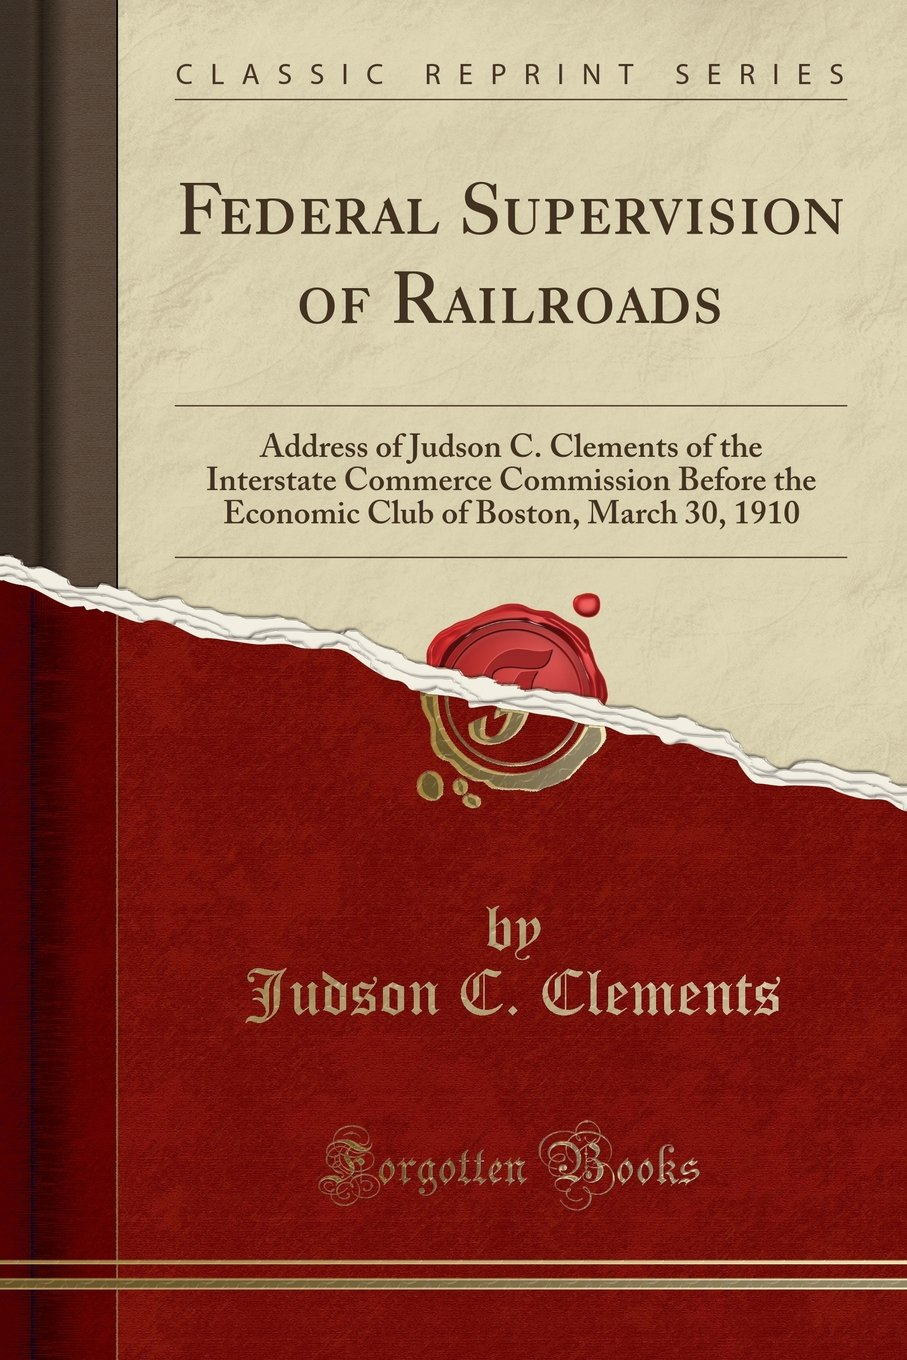 Download Federal Supervision of Railroads: Address of Judson C. Clements of the Interstate Commerce Commission Before the Economic Club of Boston, March 30, 1910 (Classic Reprint) PDF